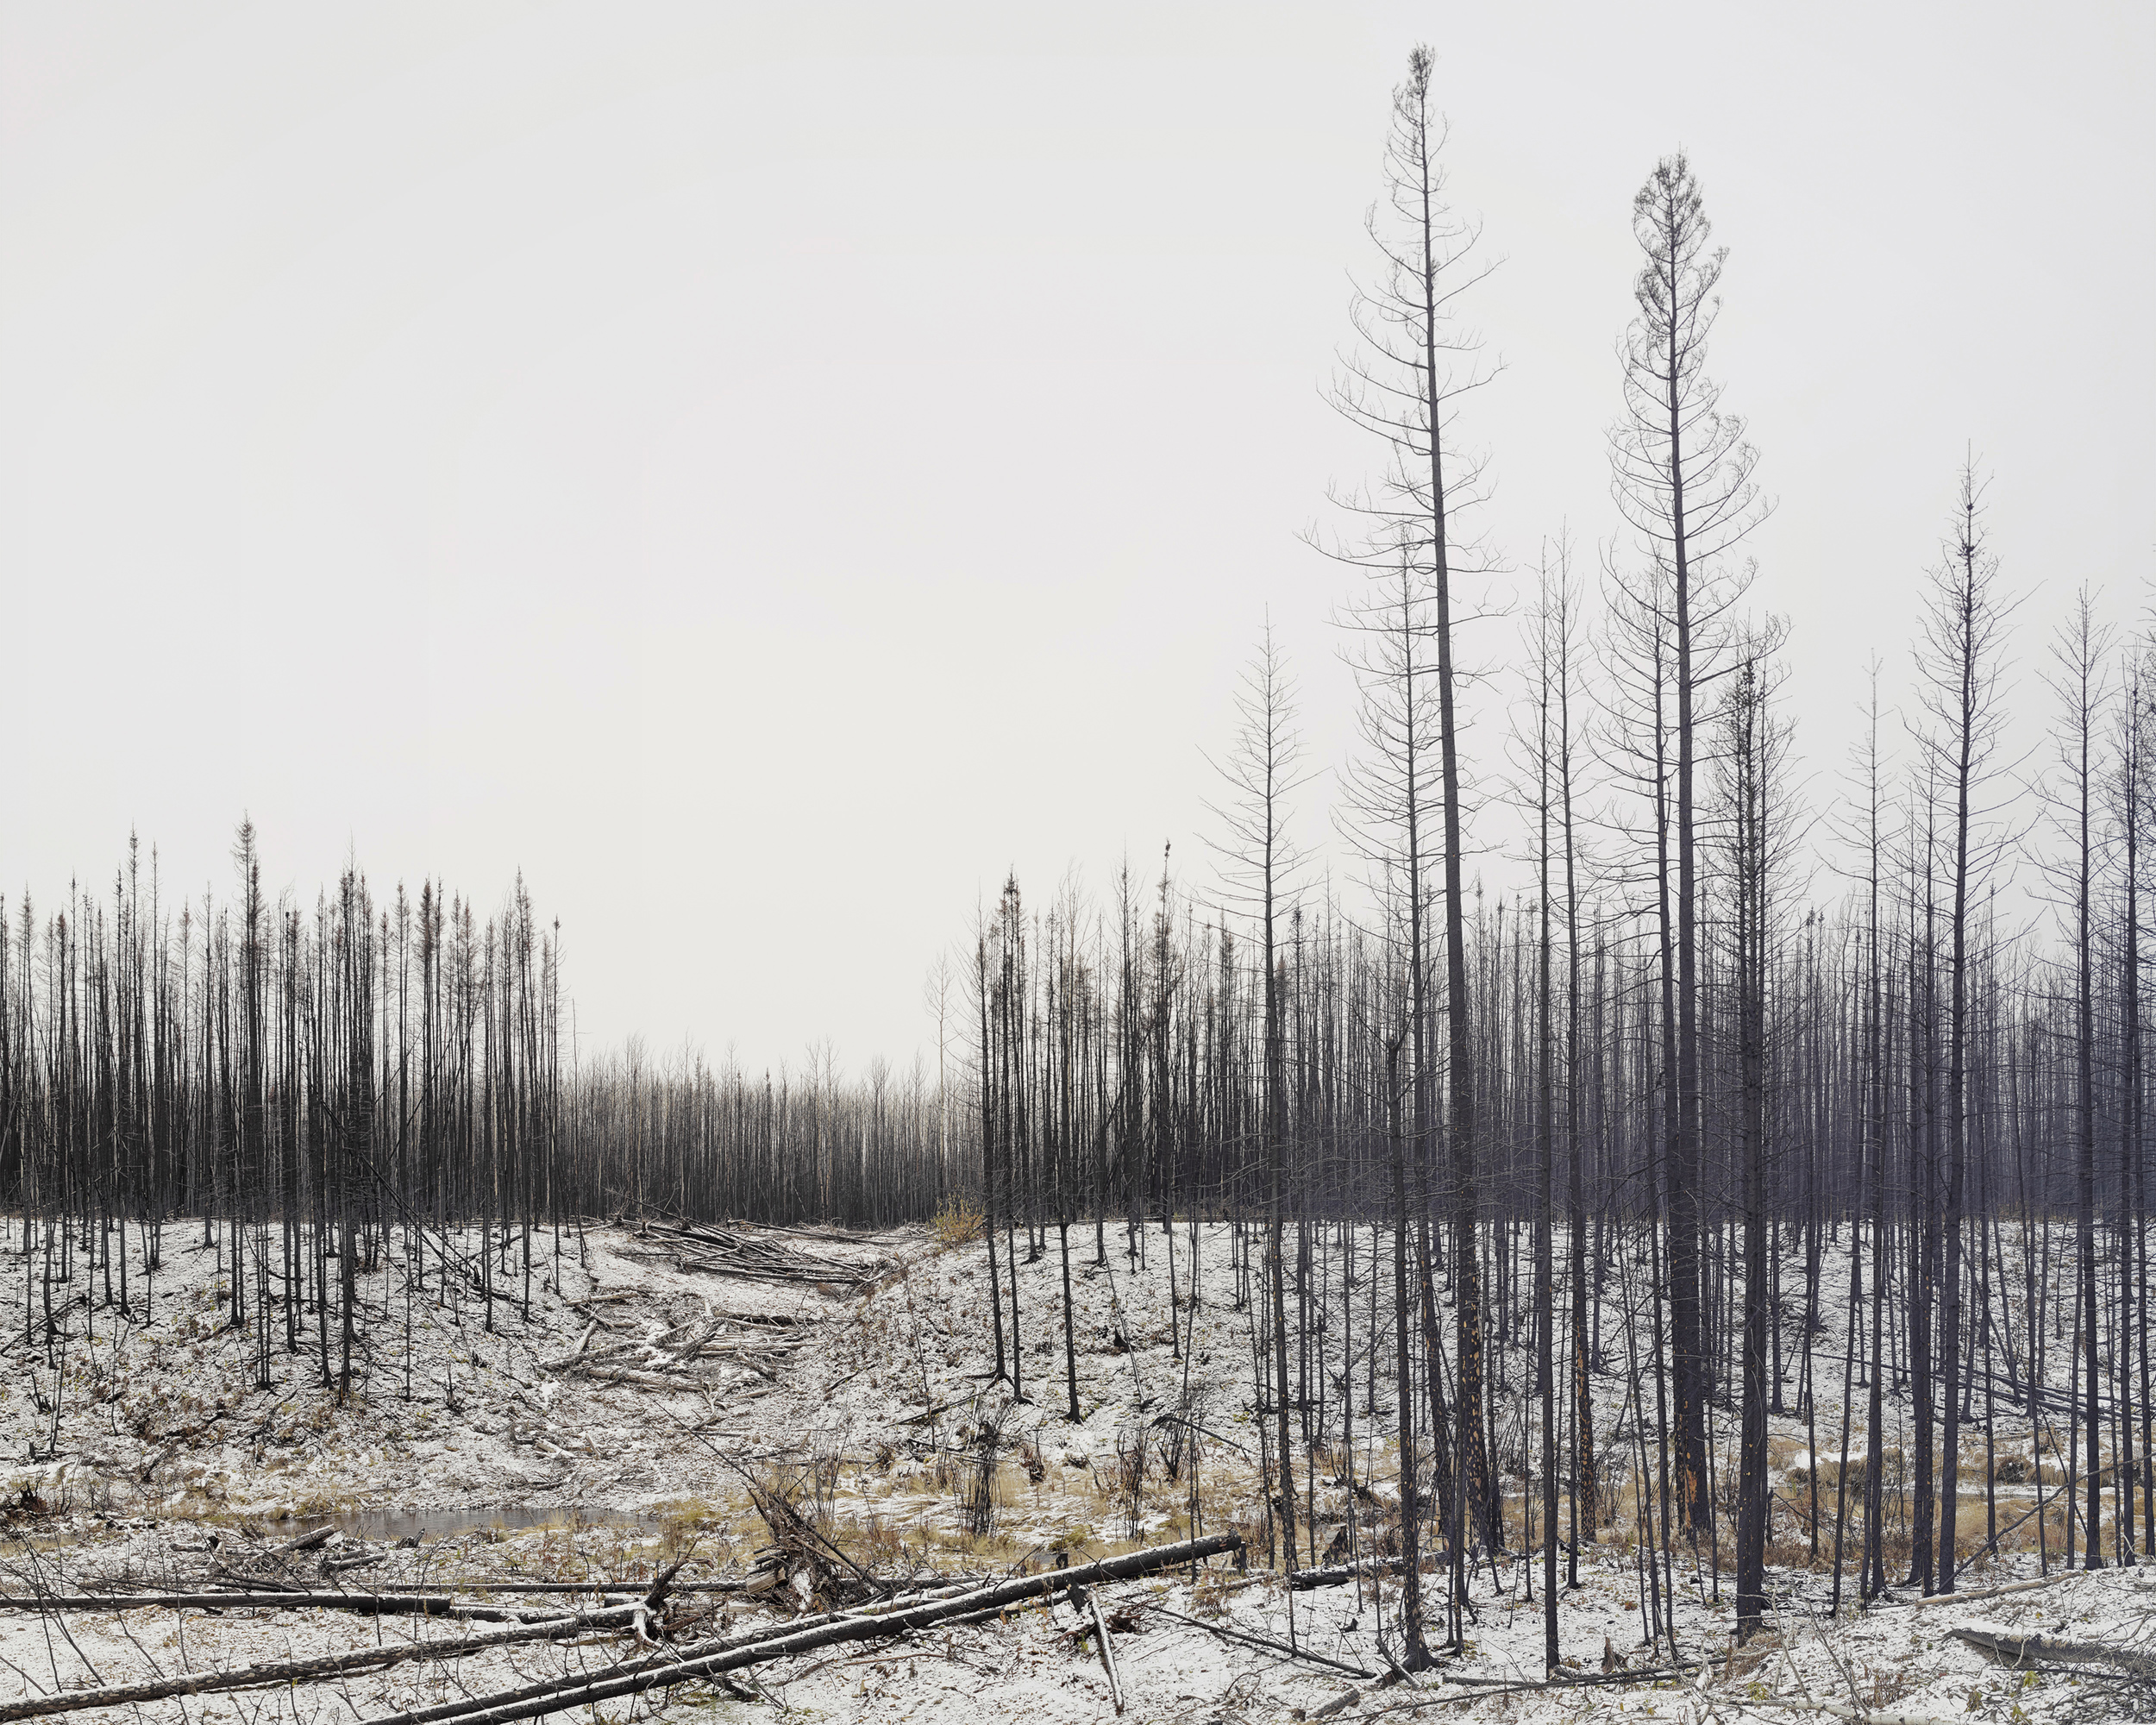 Emergency Fire Break, Fort McMurray, Canada. November 2016